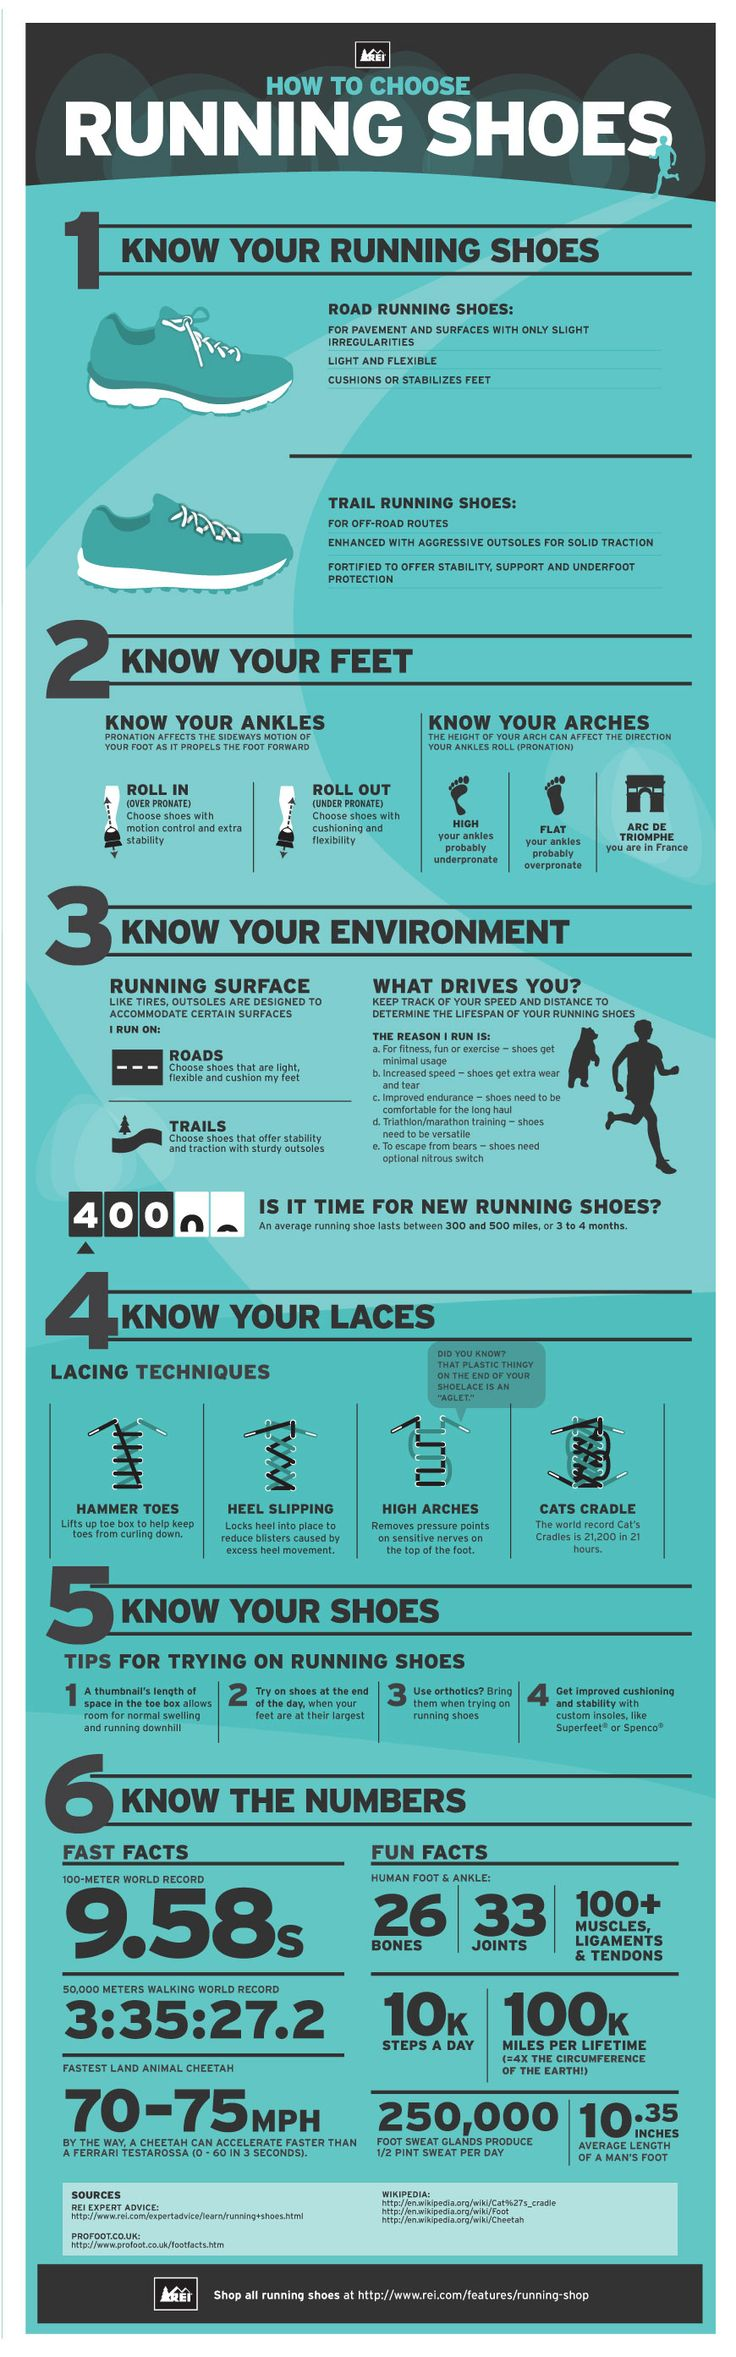 Running Shoes Infographic: How to Choose Running Shoes